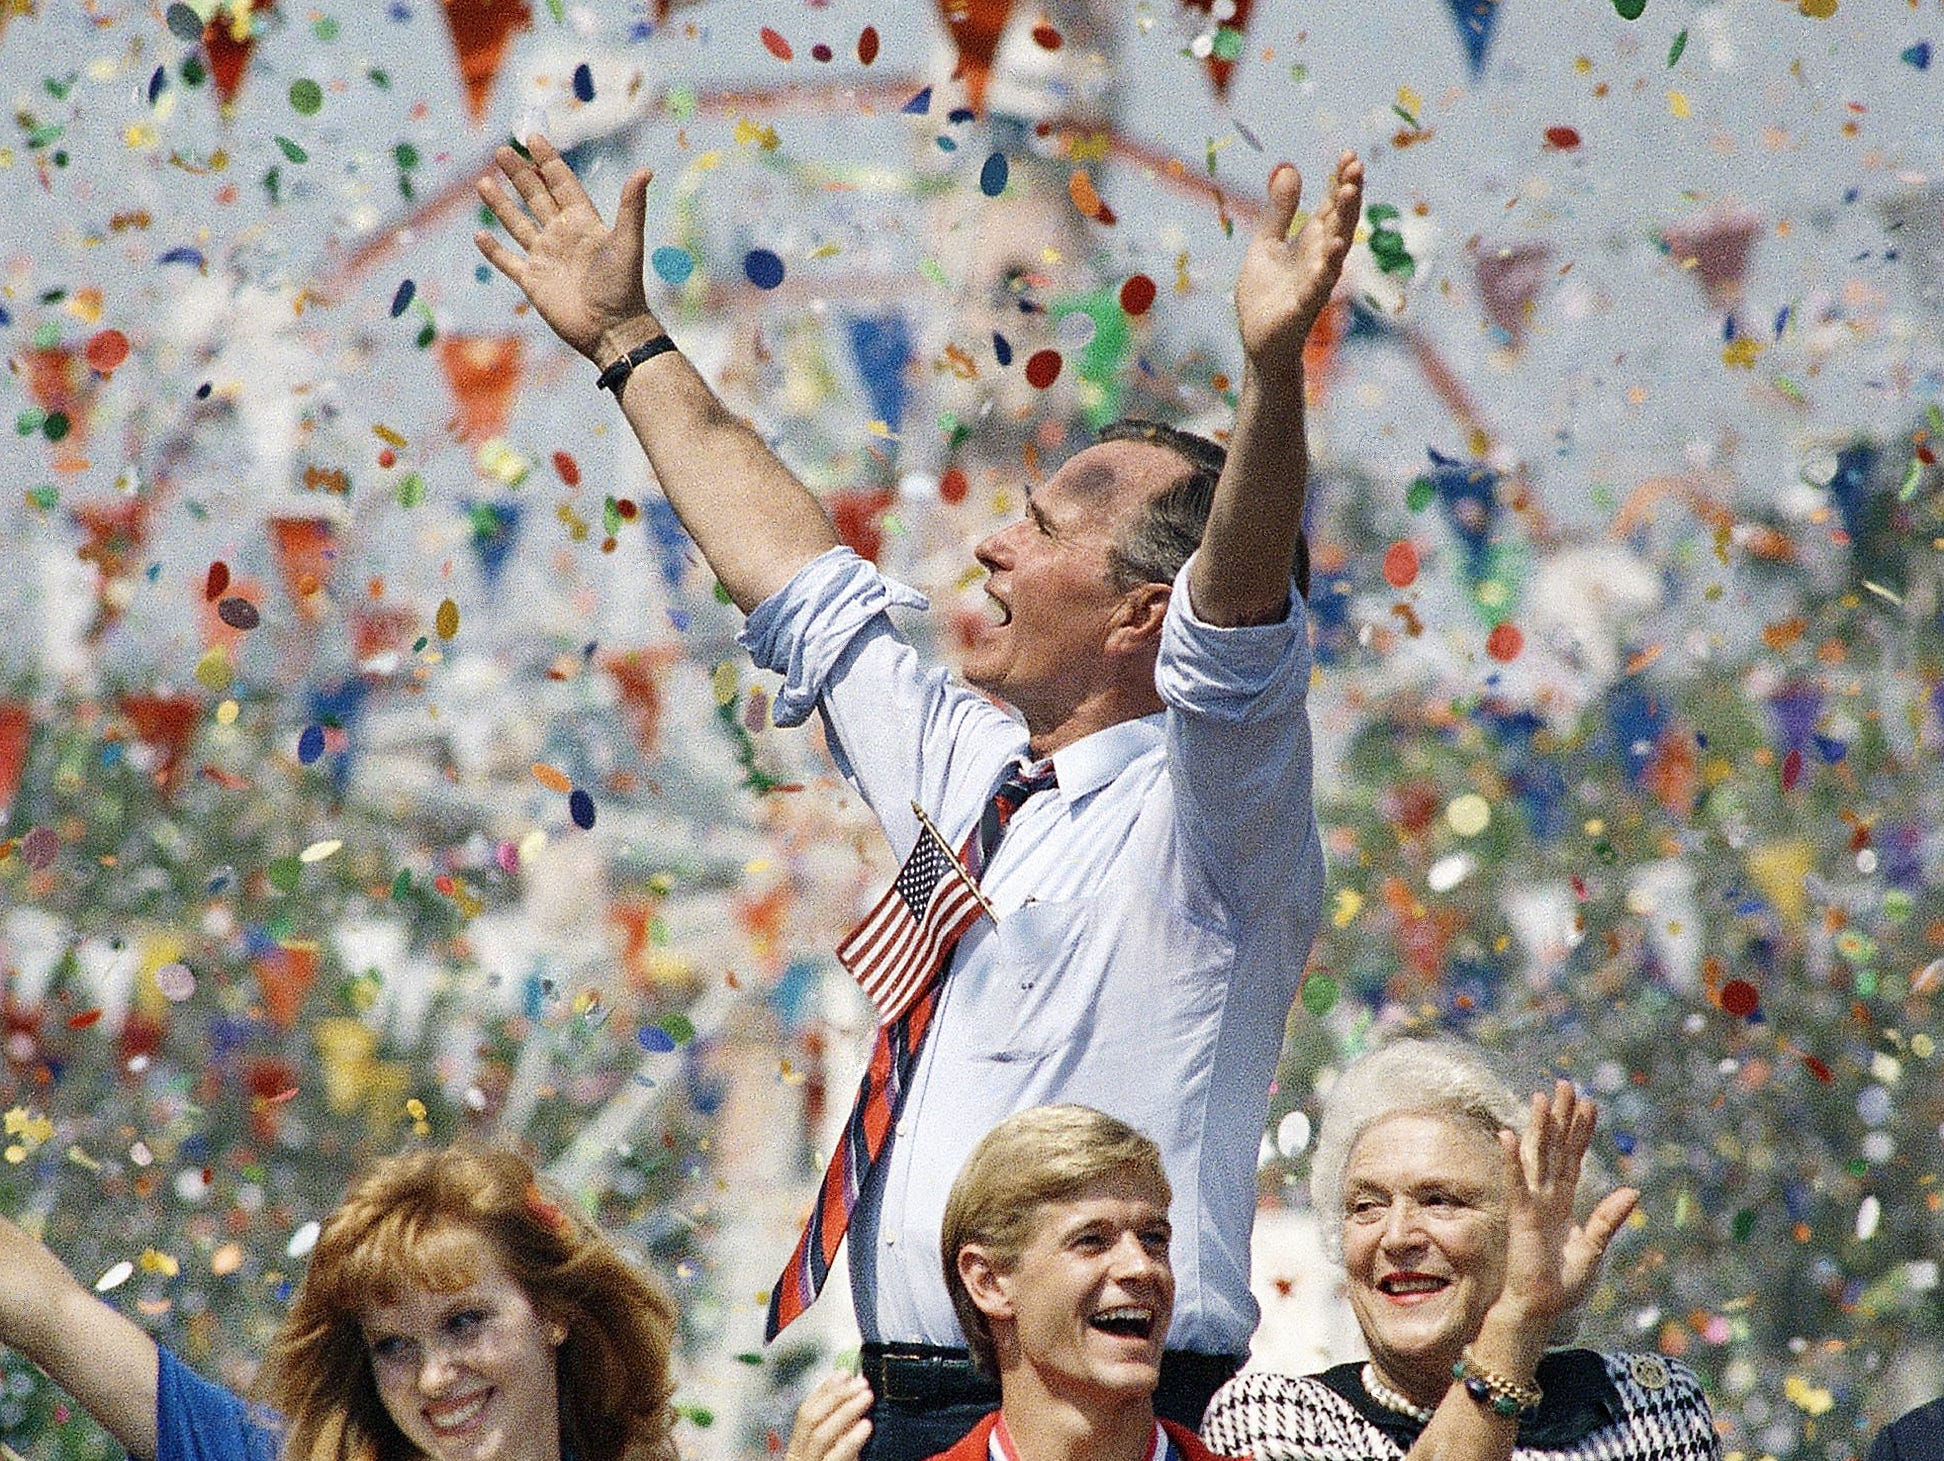 Vice President George H.W. Bush acknowledges the cheers from the crowd during a parade at  Disneyland in Anaheim, Calif. early in September 1988.  With him at right is his wife Barbara Bush and bottom center, UCLA gymnast and member of the Olympic team, Peter Vidmar.   Woman at left is unidentified. (AP Photo/J. Scott Applewhite)